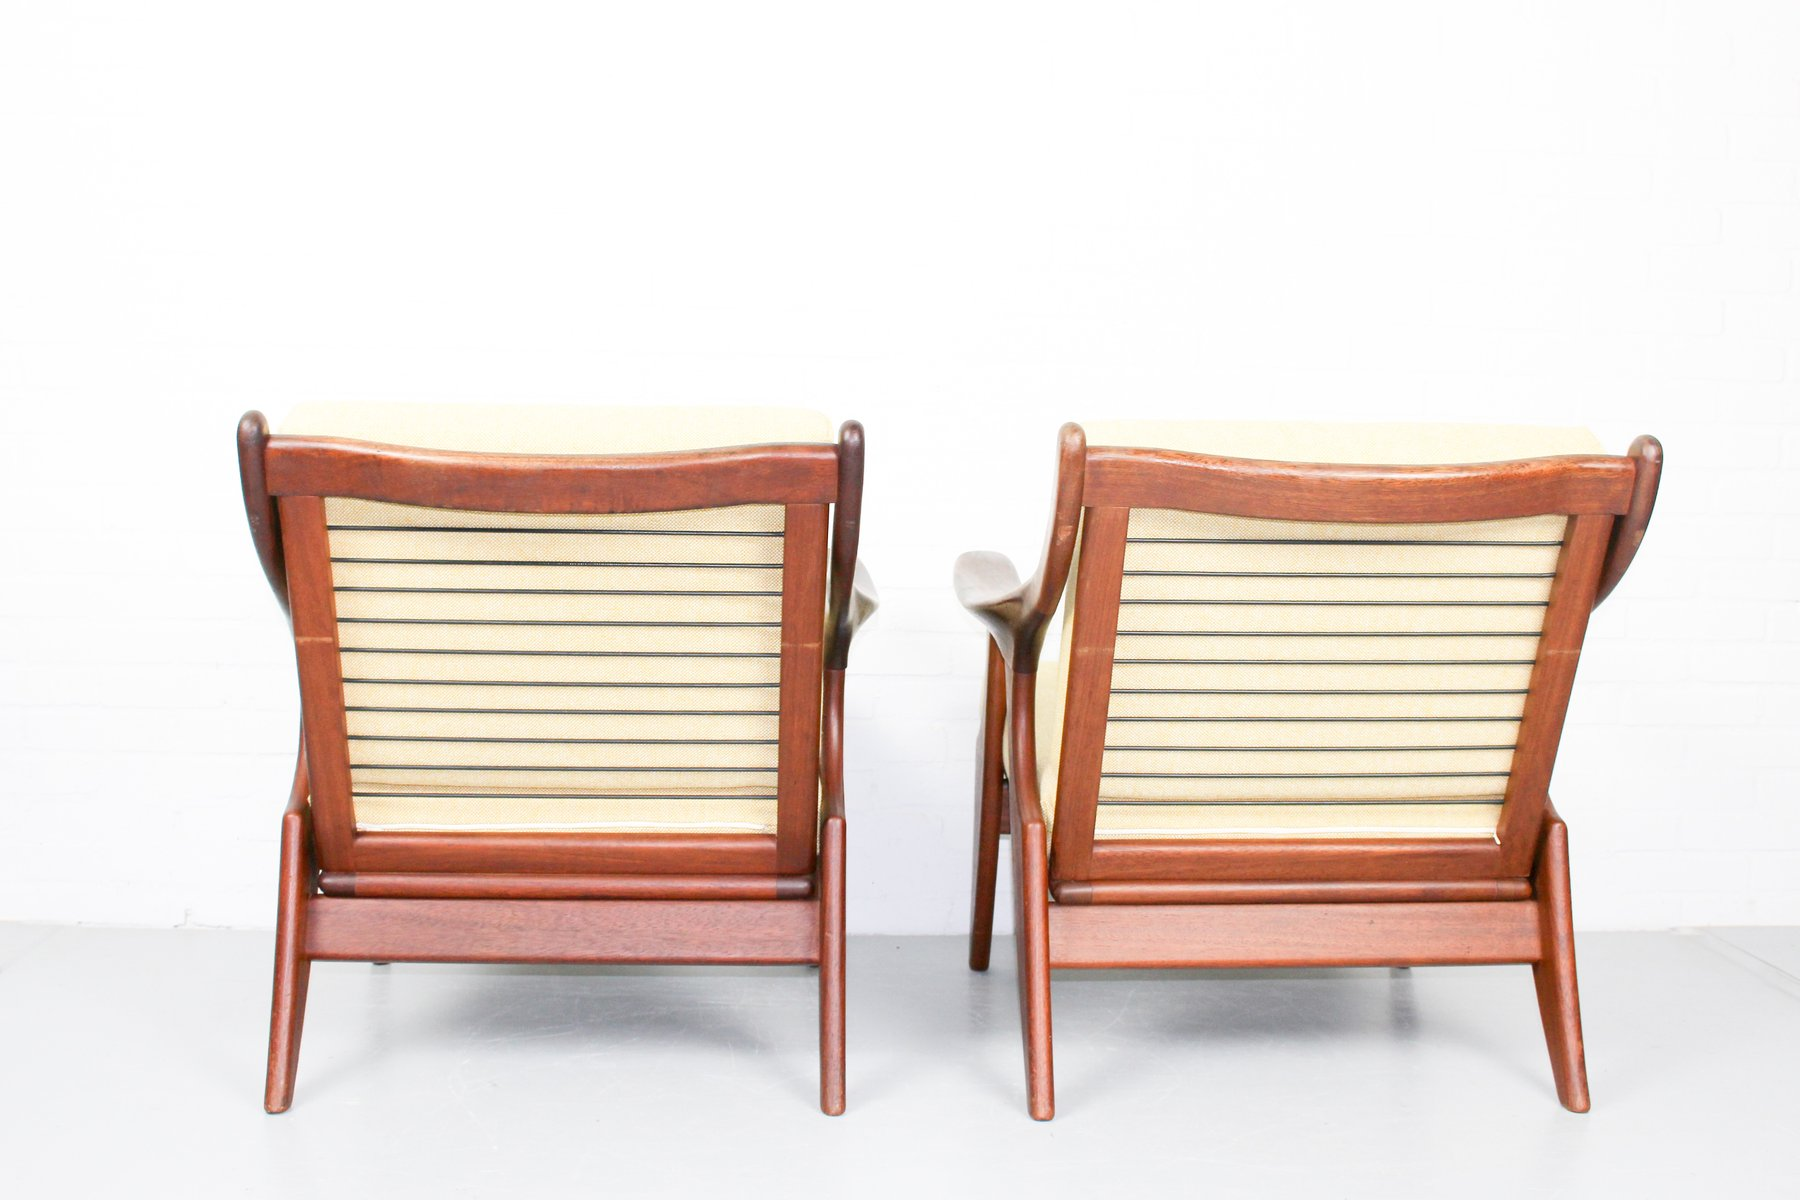 Small lounge chairs by de ster gelderland 1950s set of 2 for Small lounge chairs for sale